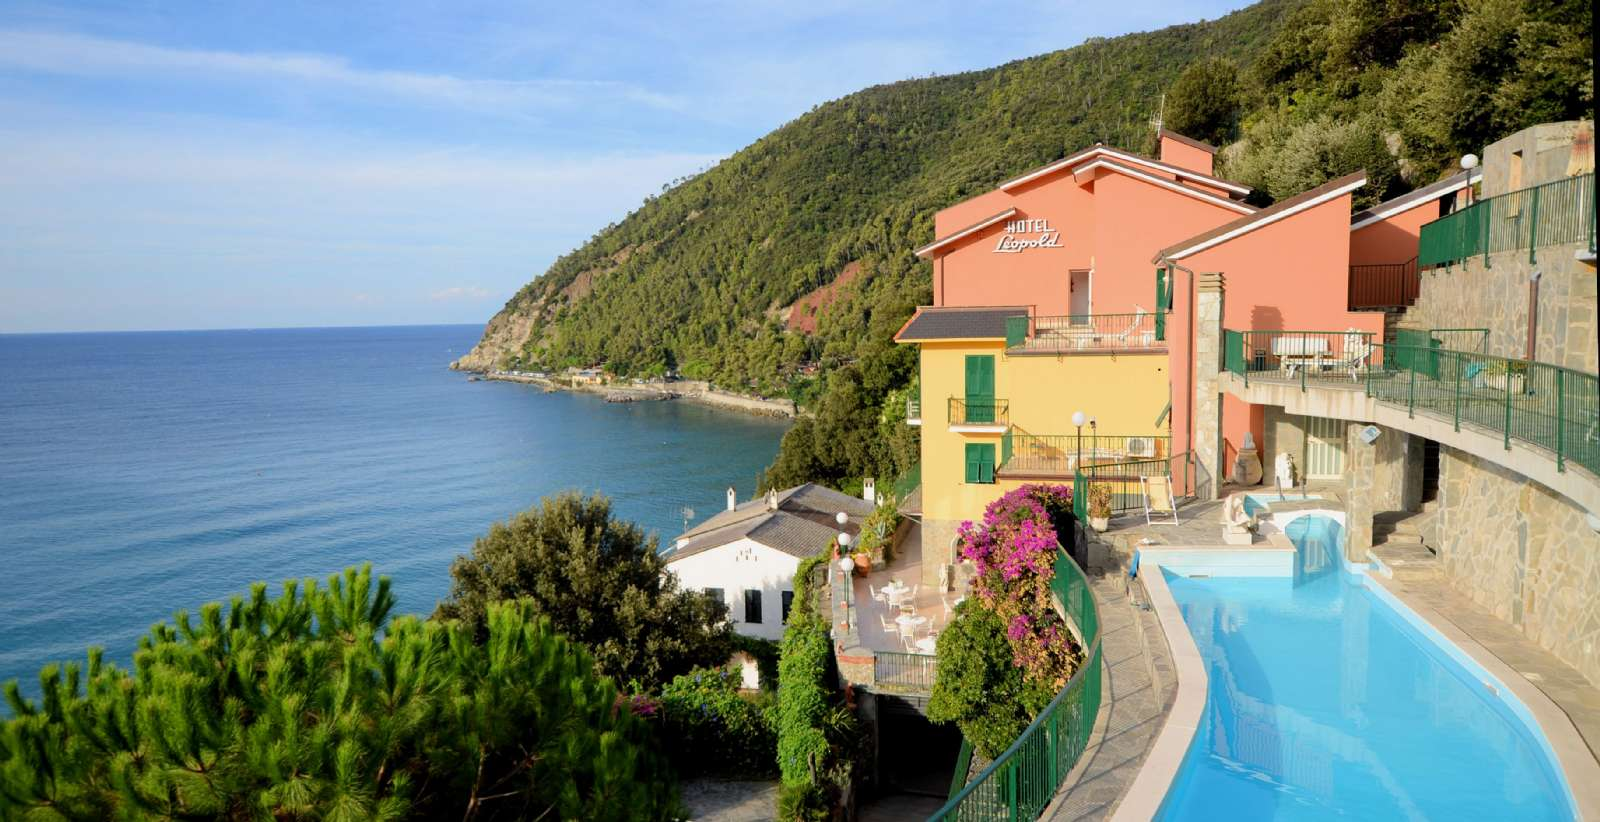 Panoramic view of the Cinque Terre National Park from the pool